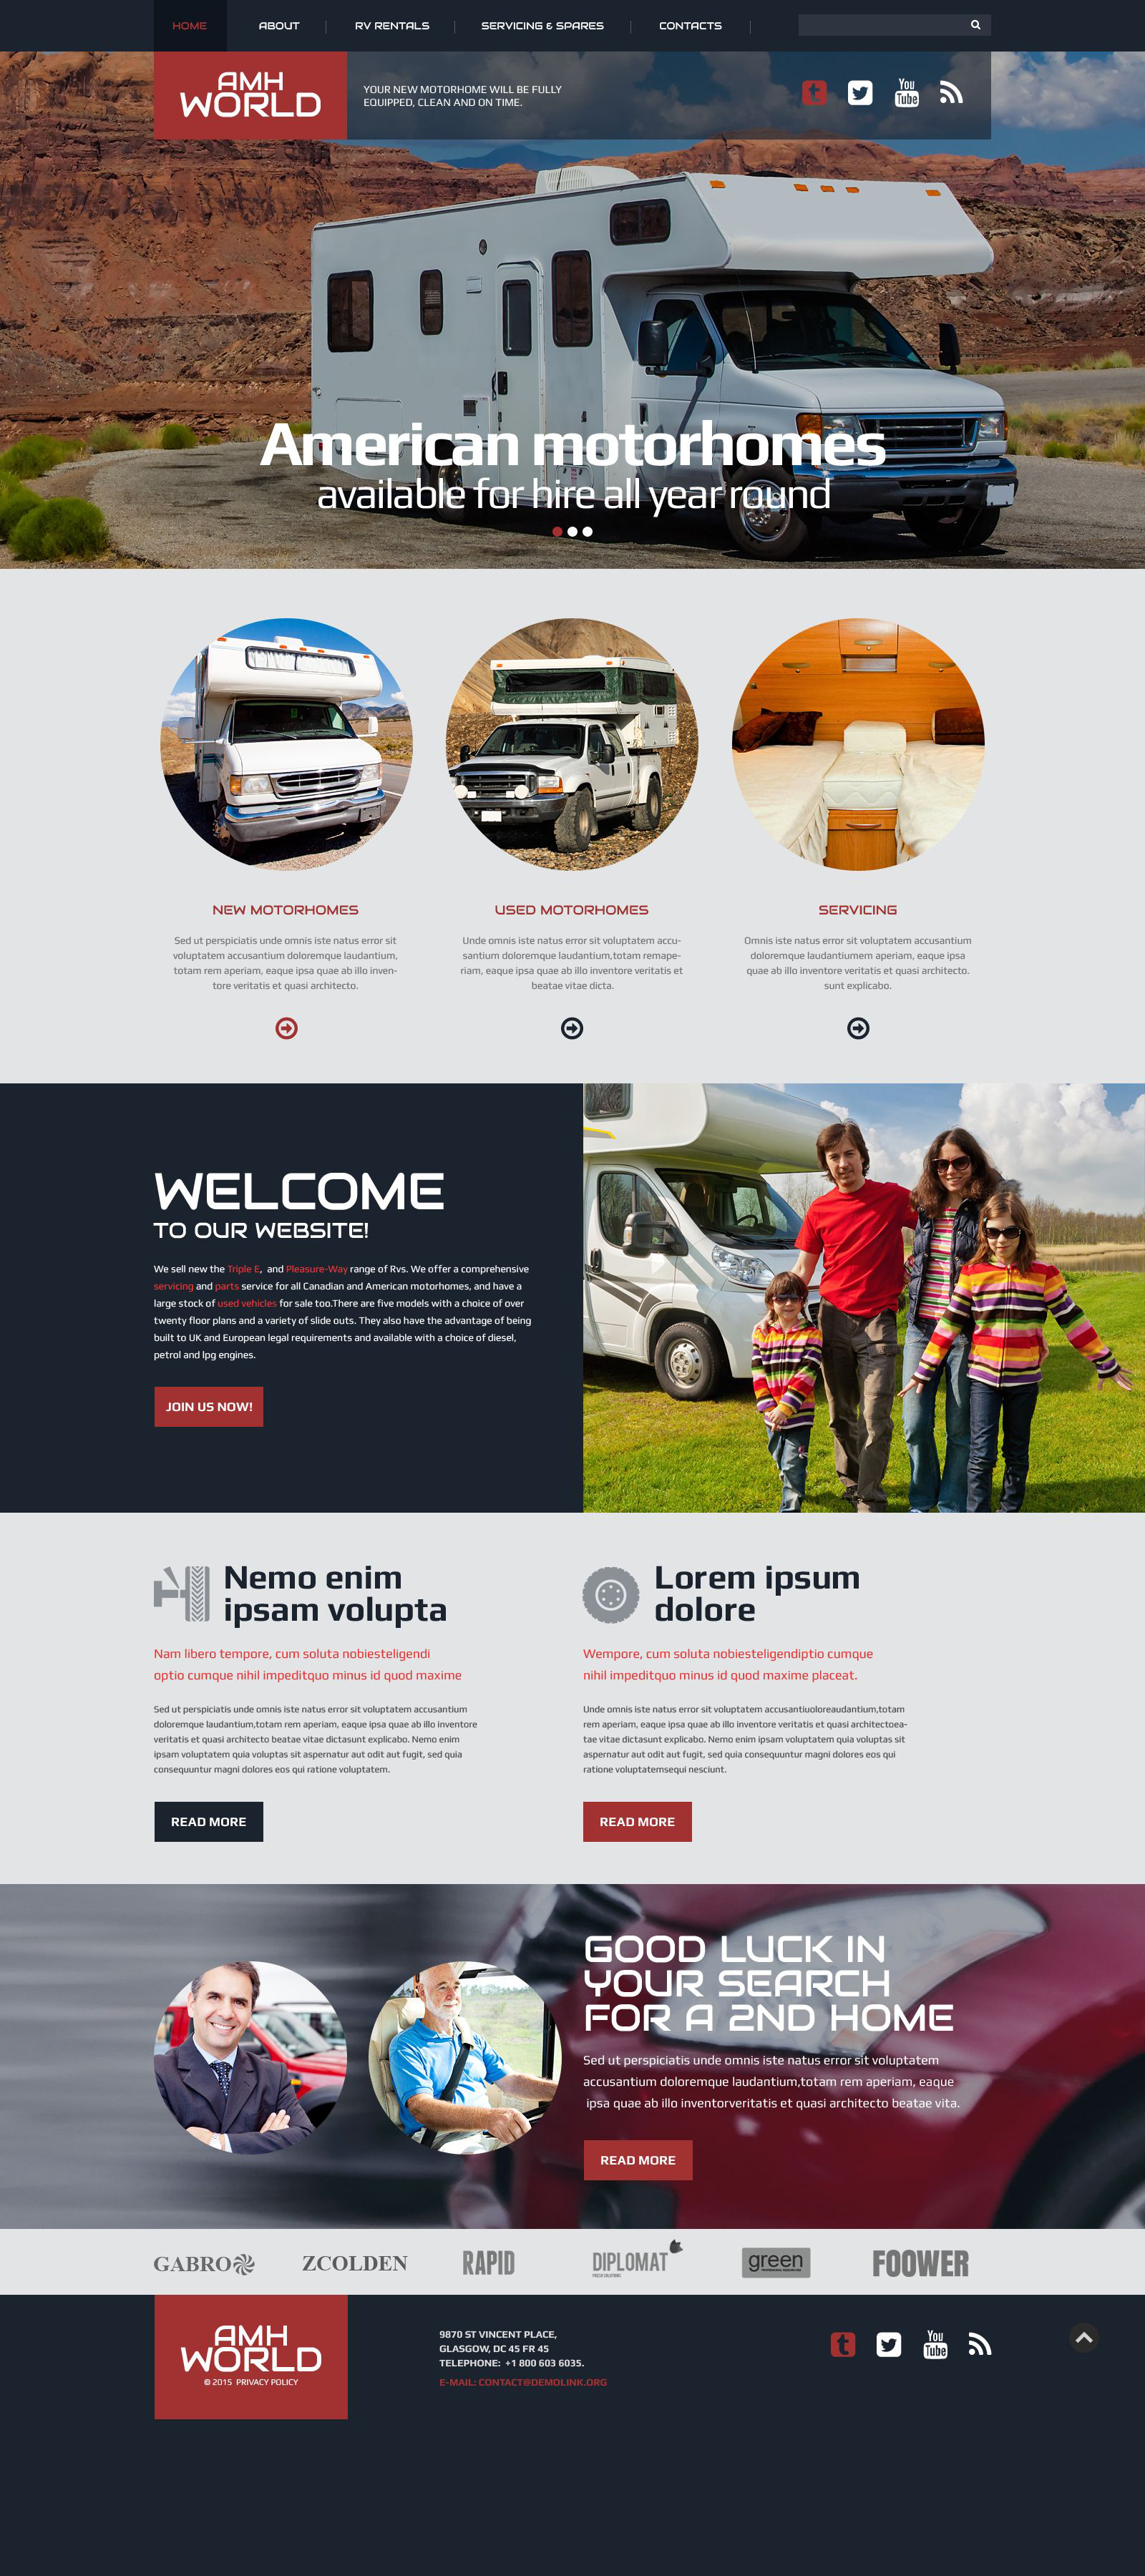 The Amh World Bootstrap Design 53850, one of the best website templates of its kind (travel, most popular), also known as amh world website template, motorhomes website template, extras website template, services website template, travel website template, cars website template, rental website template, comfort website template, camping website template, trip and related with amh world, motorhomes, extras, services, travel, cars, rental, comfort, camping, trip, etc.